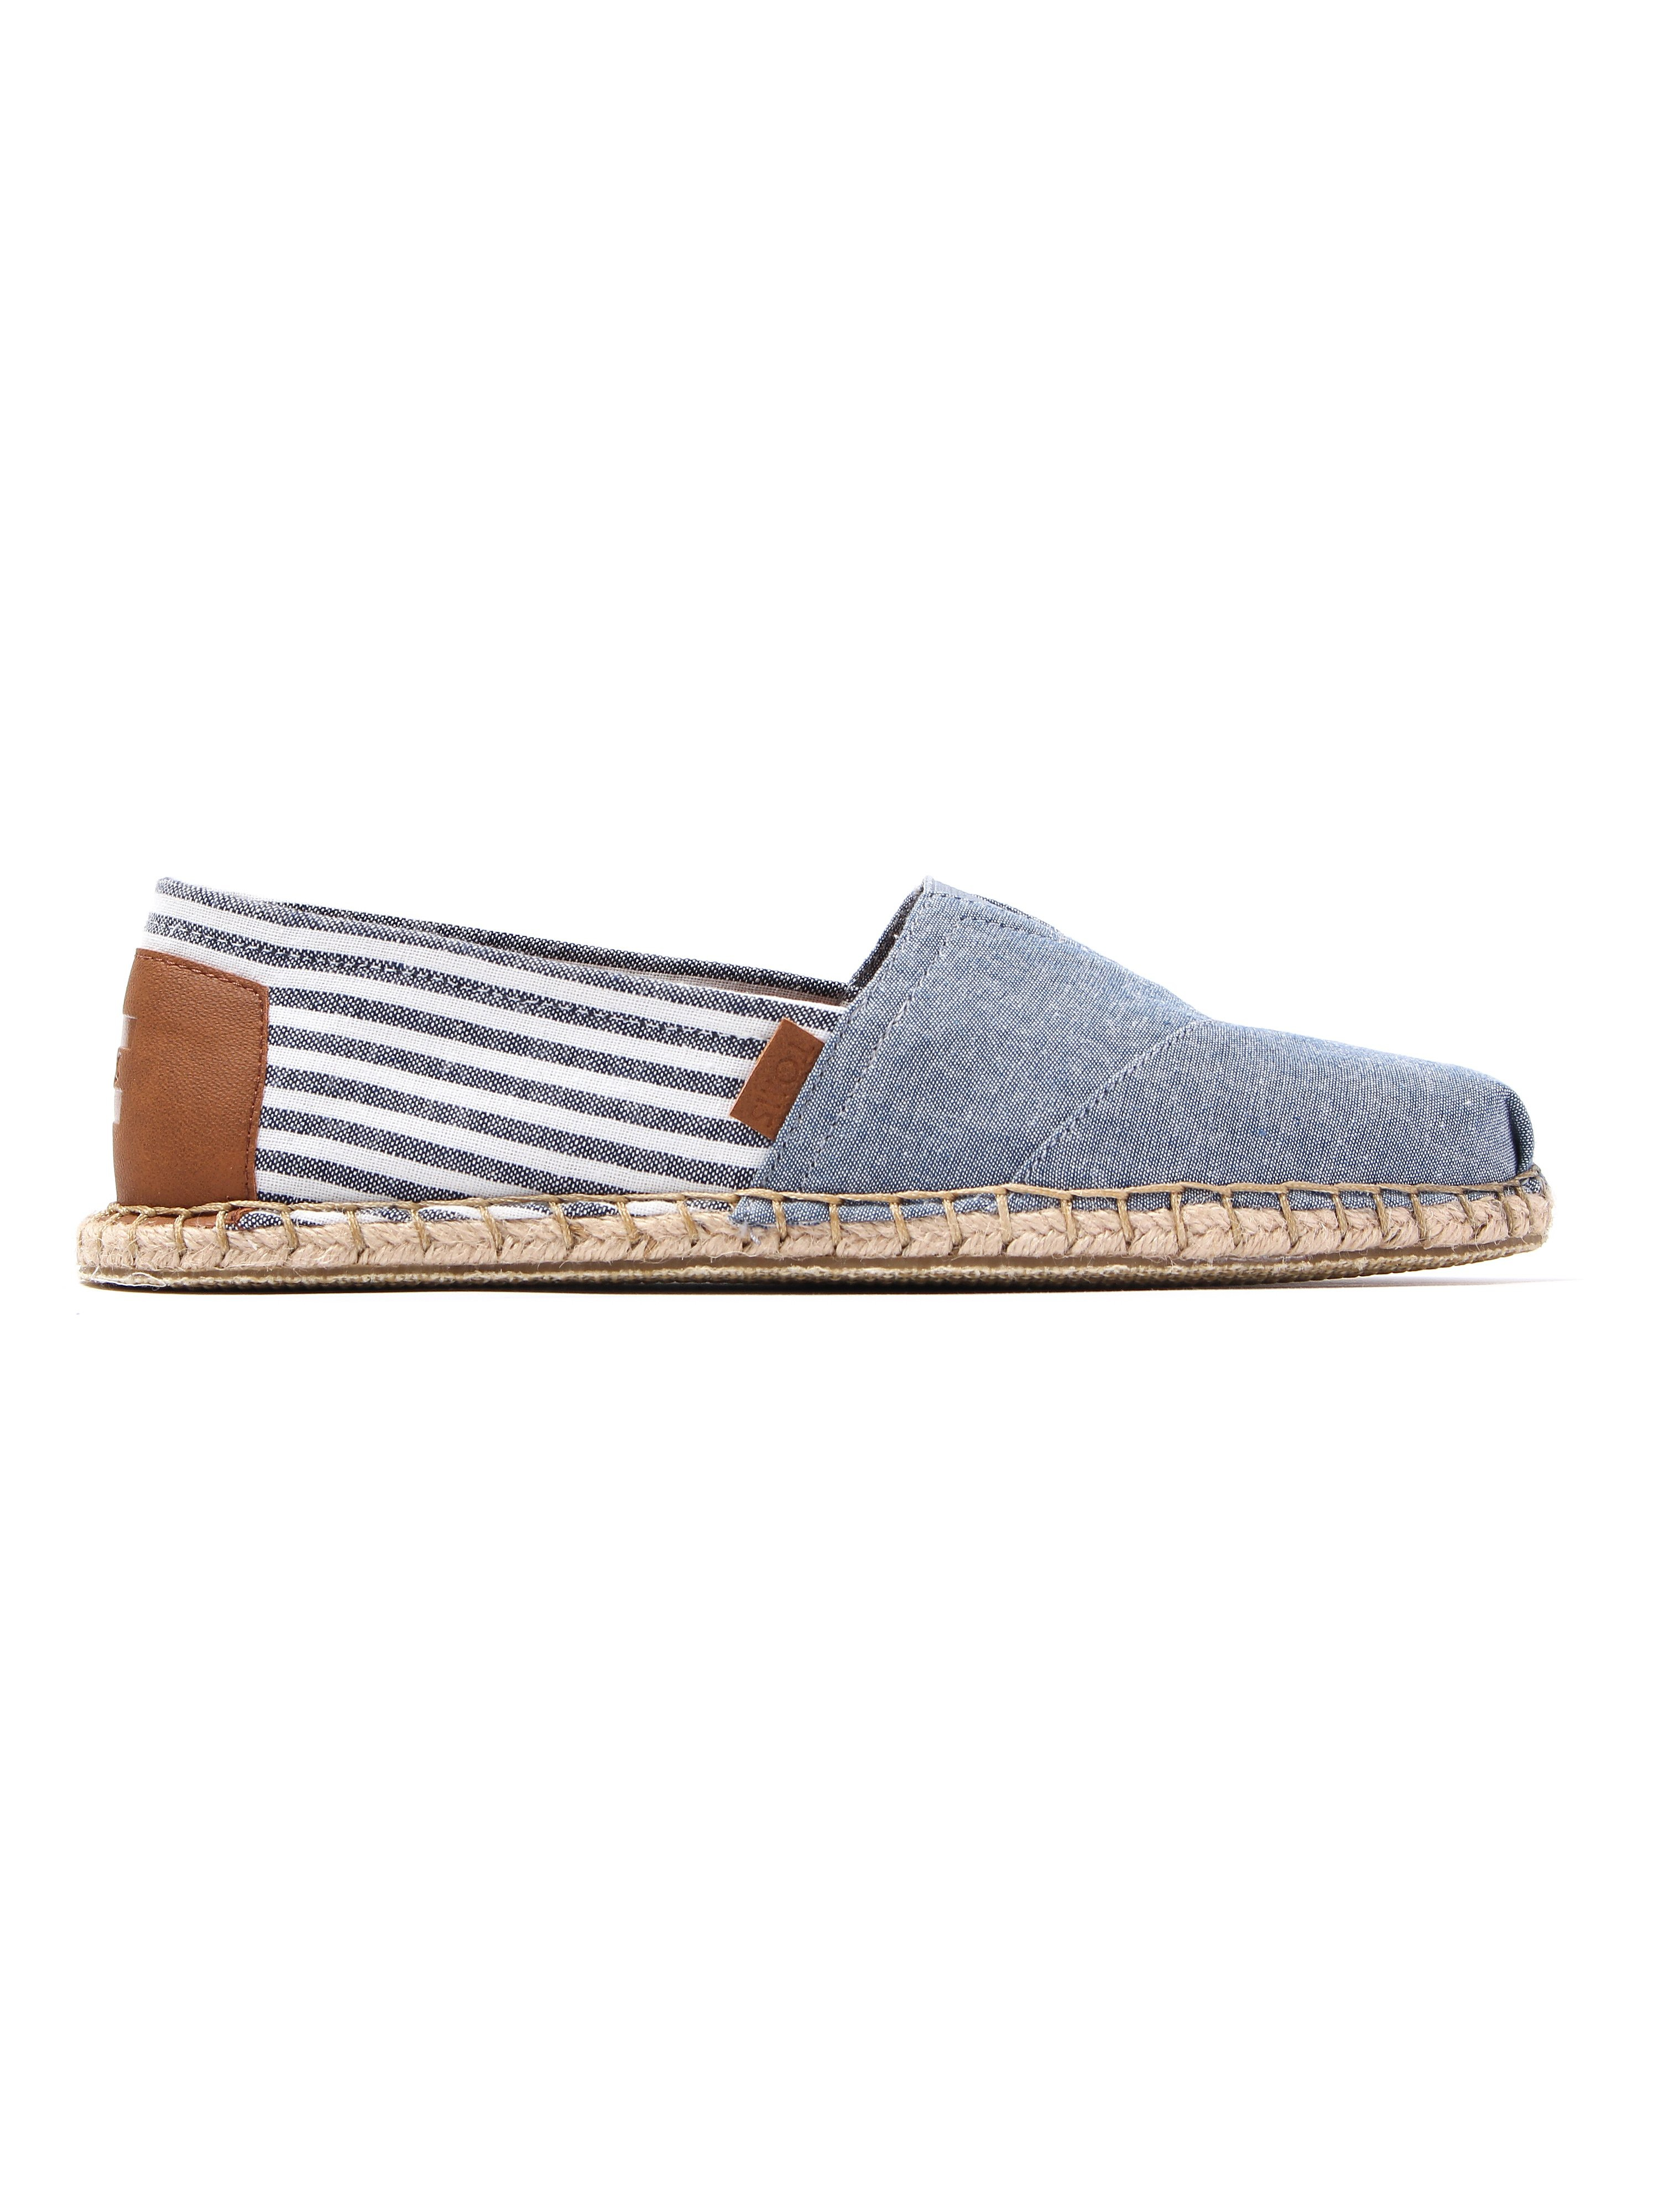 Toms Men's Classic Chambray Blanket Stitch Espadrilles - Light Blue